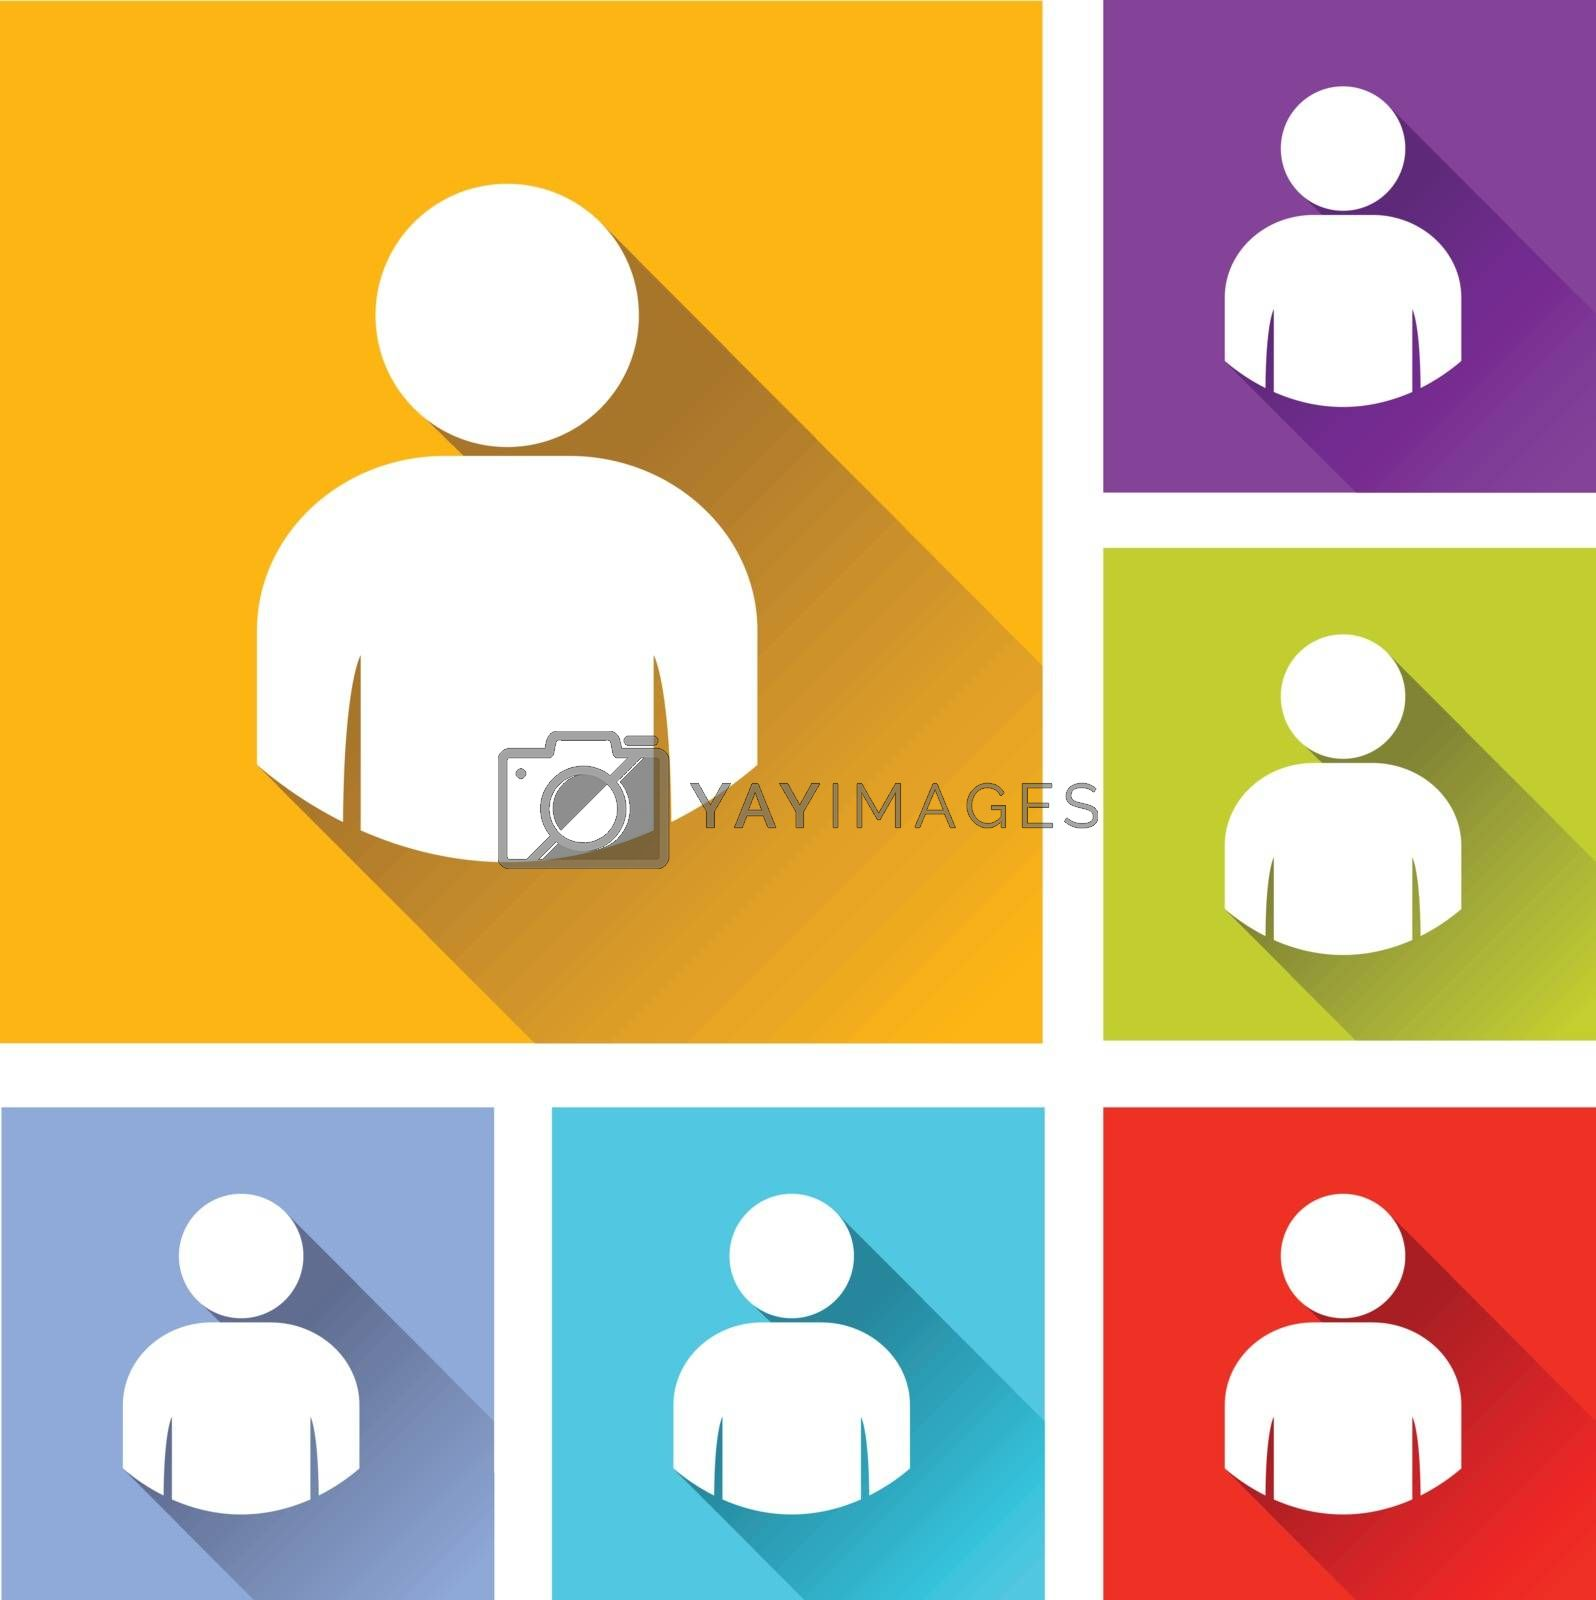 illustration of colorful square user icons set